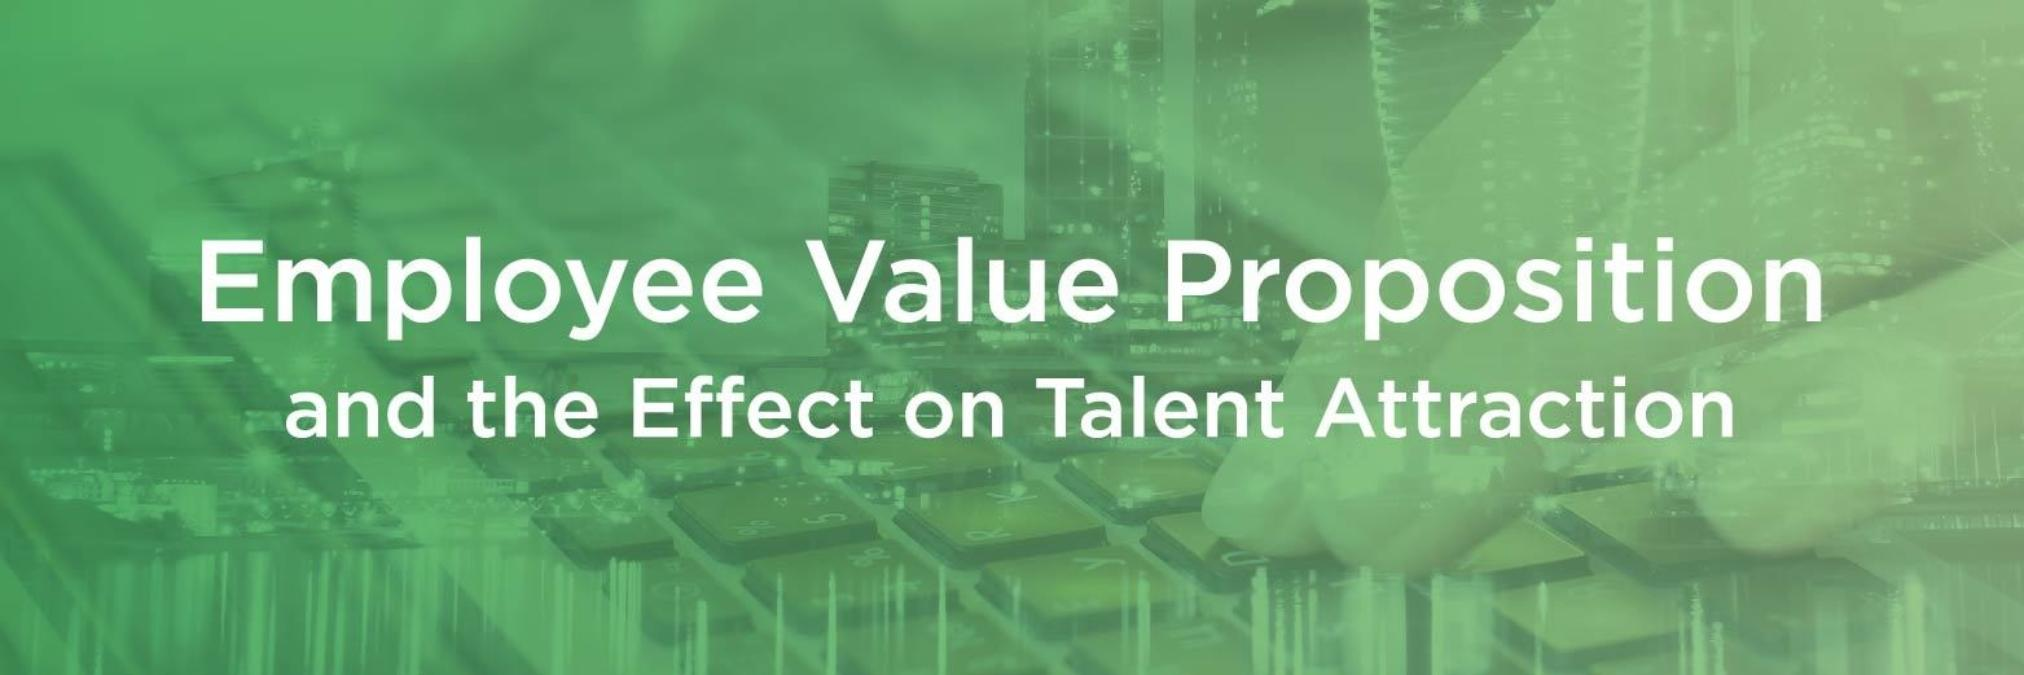 Article banner of Employee Value Proposition and the effect on talent attraction